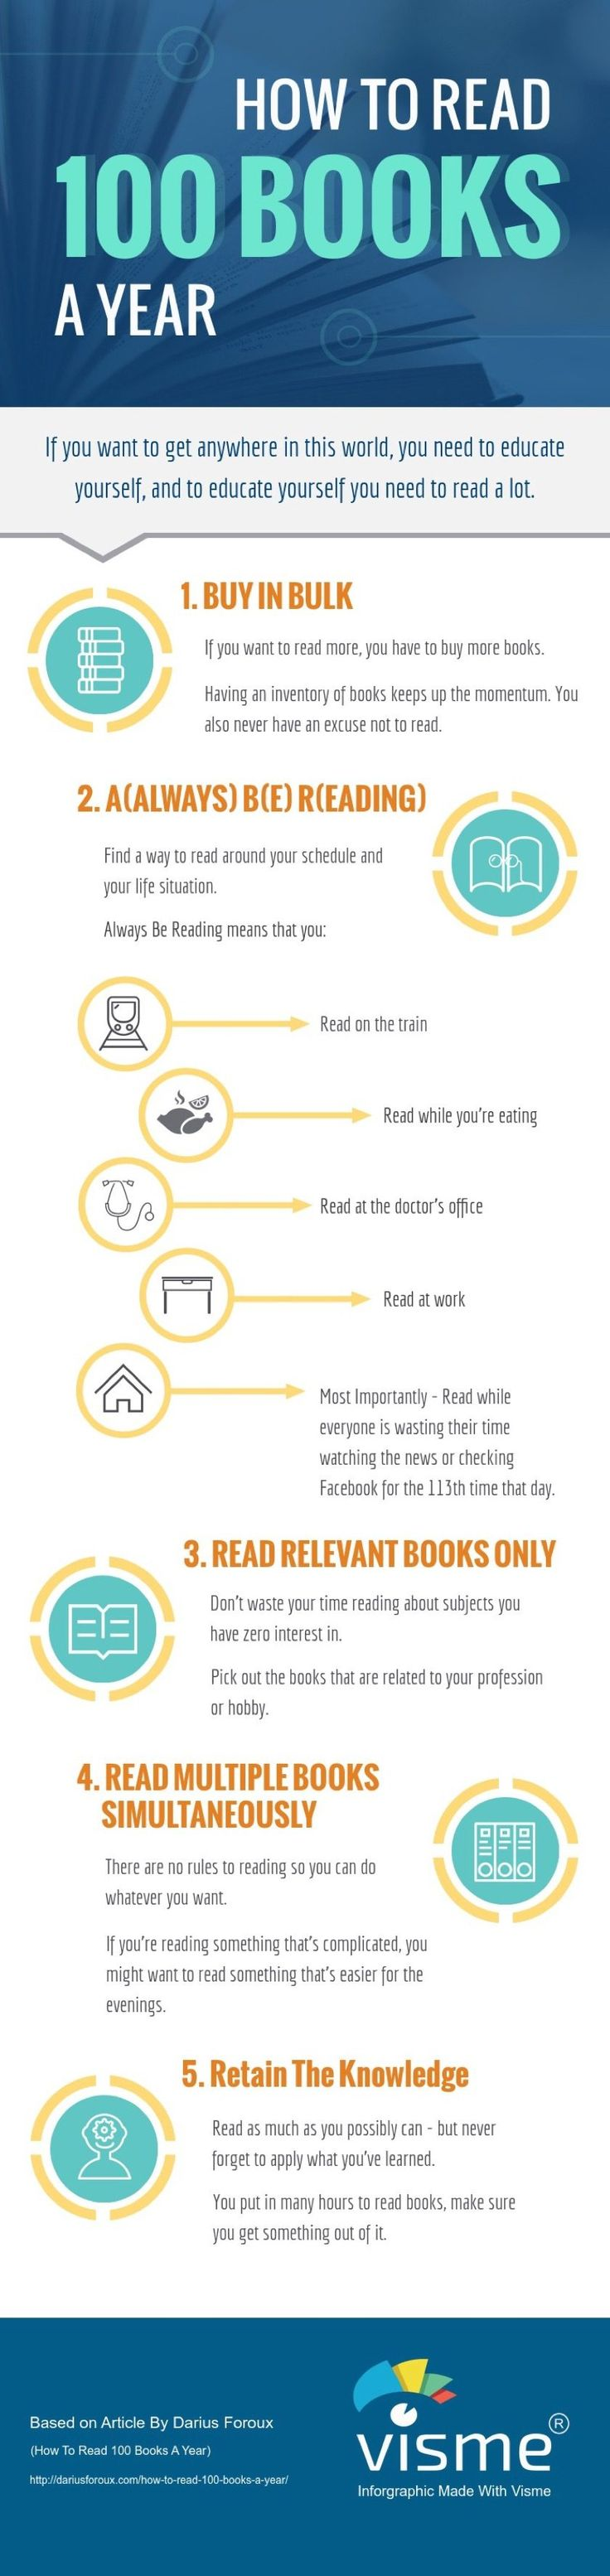 5 Tips That Will Help You Read 100 Books A Year (infographic)